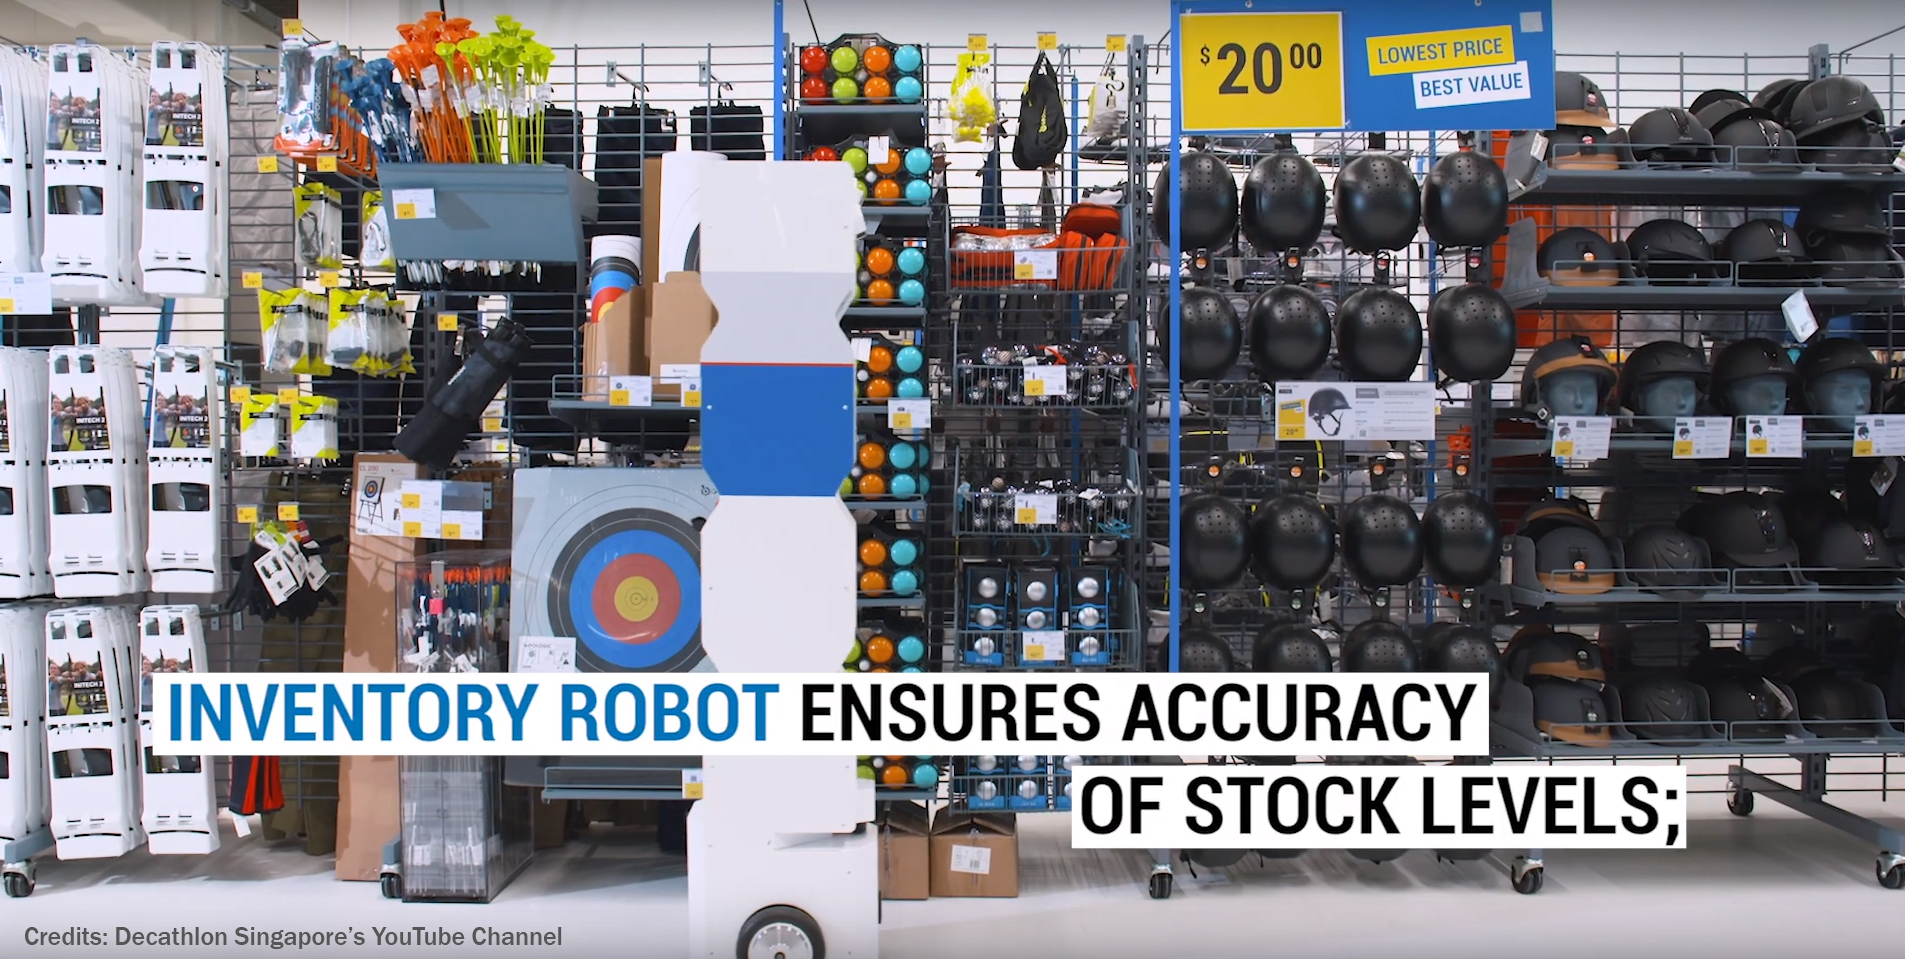 StockBot, the inventory robot at Decathlon Singapore!